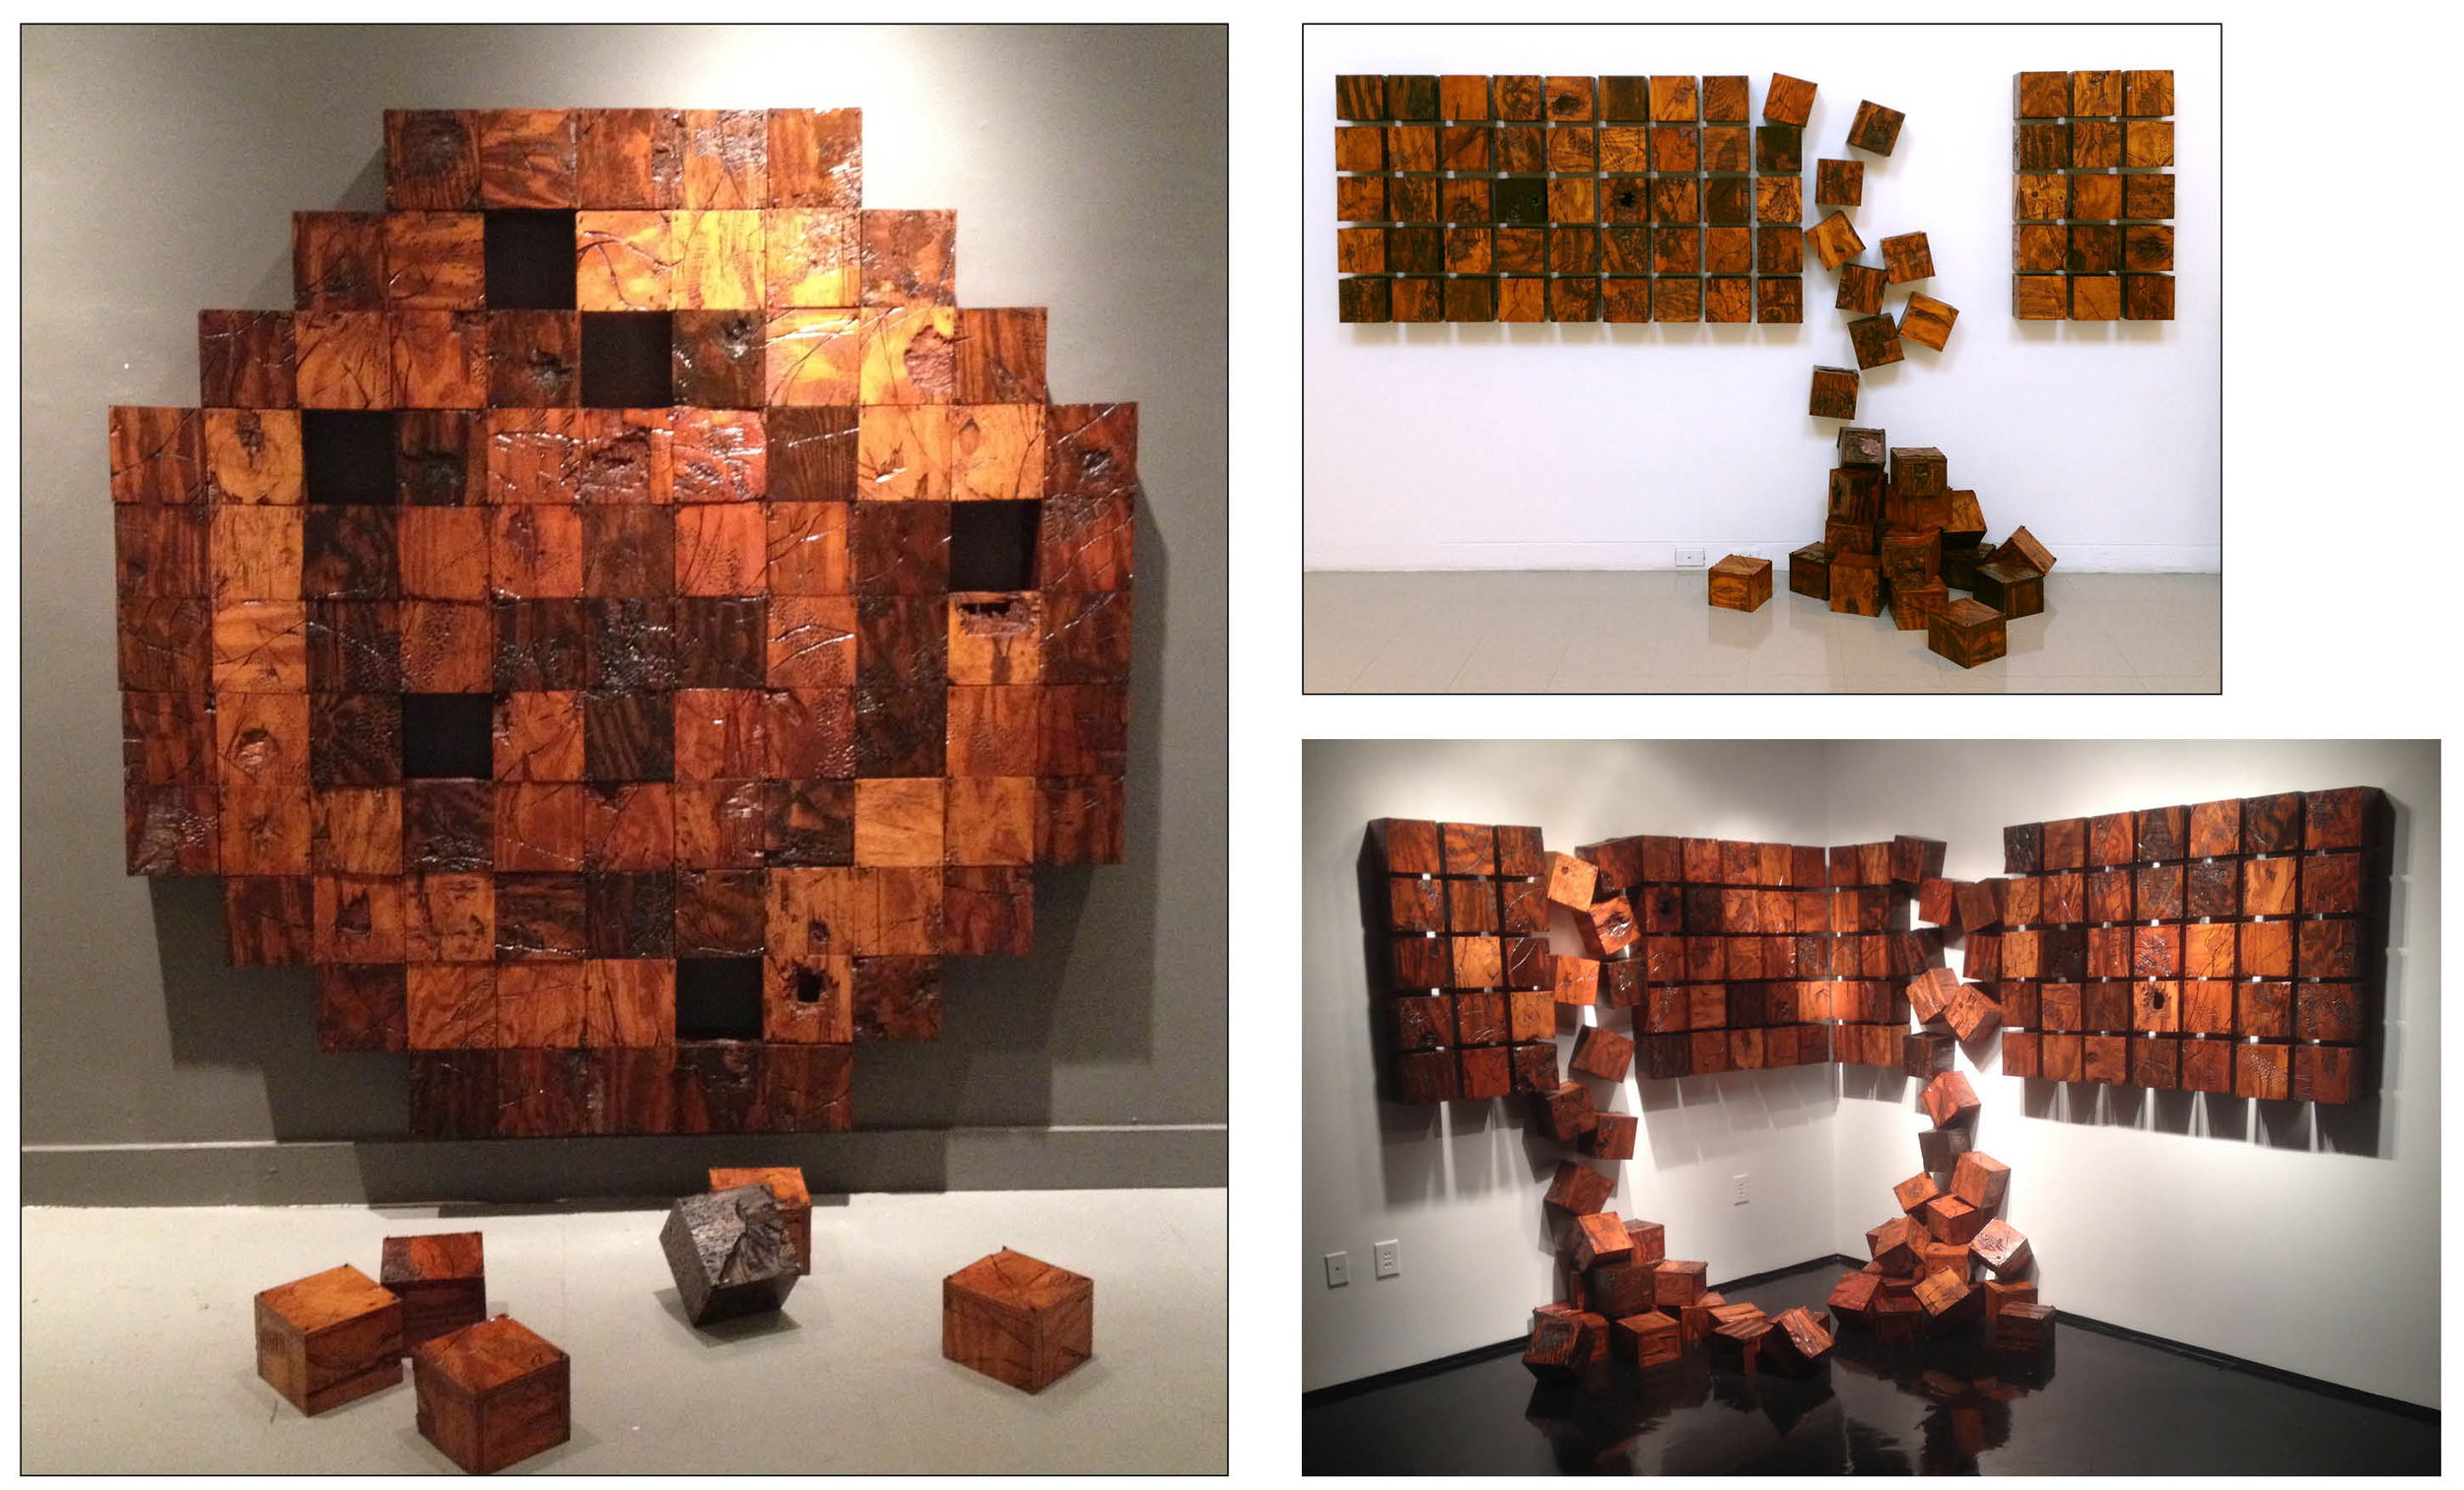 Fluctuations - Formation III, IV, & V  size varies based on formation  oil paint, shellac, plywood, masonry nails  2013-15